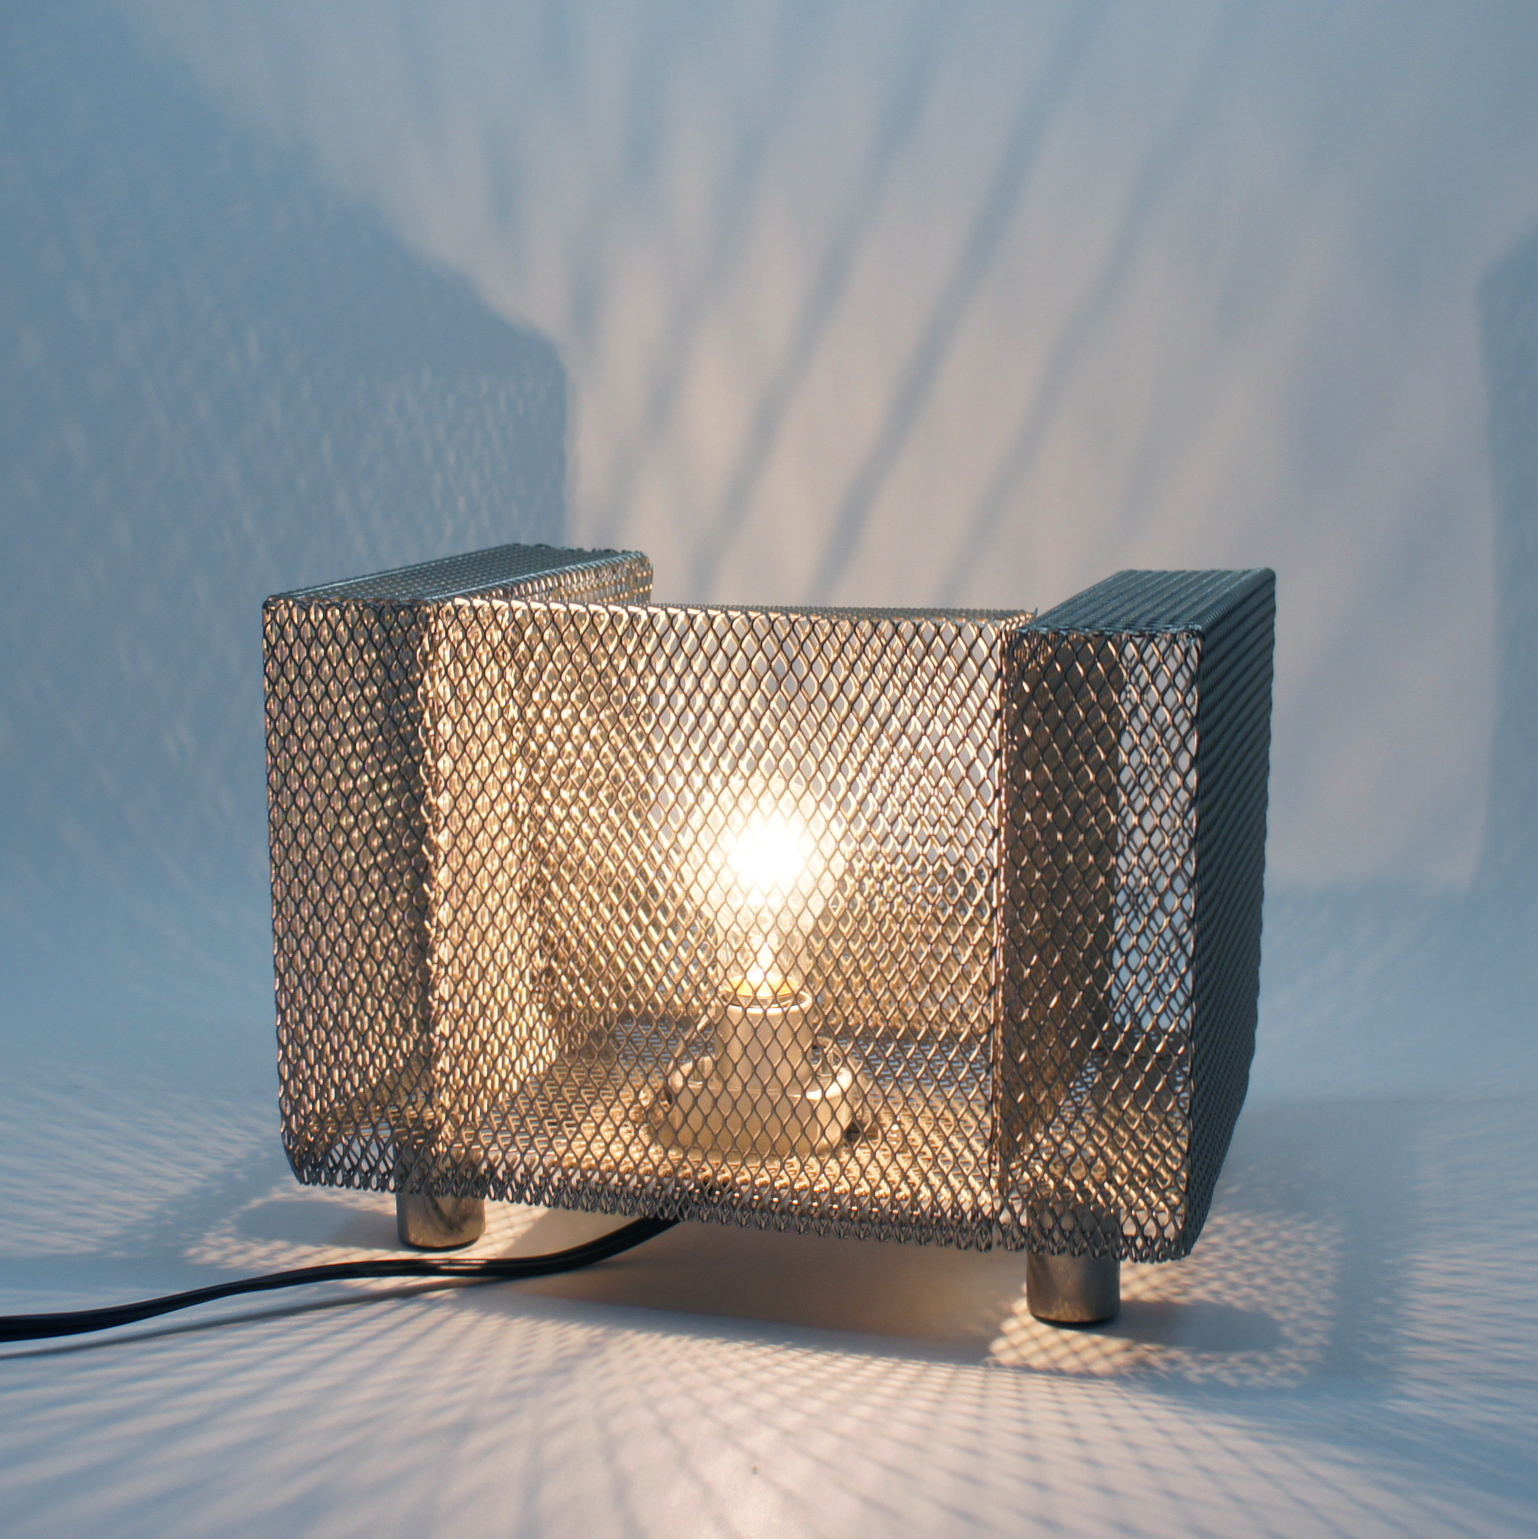 Expanded metal Miniature Chair Display Lamp by